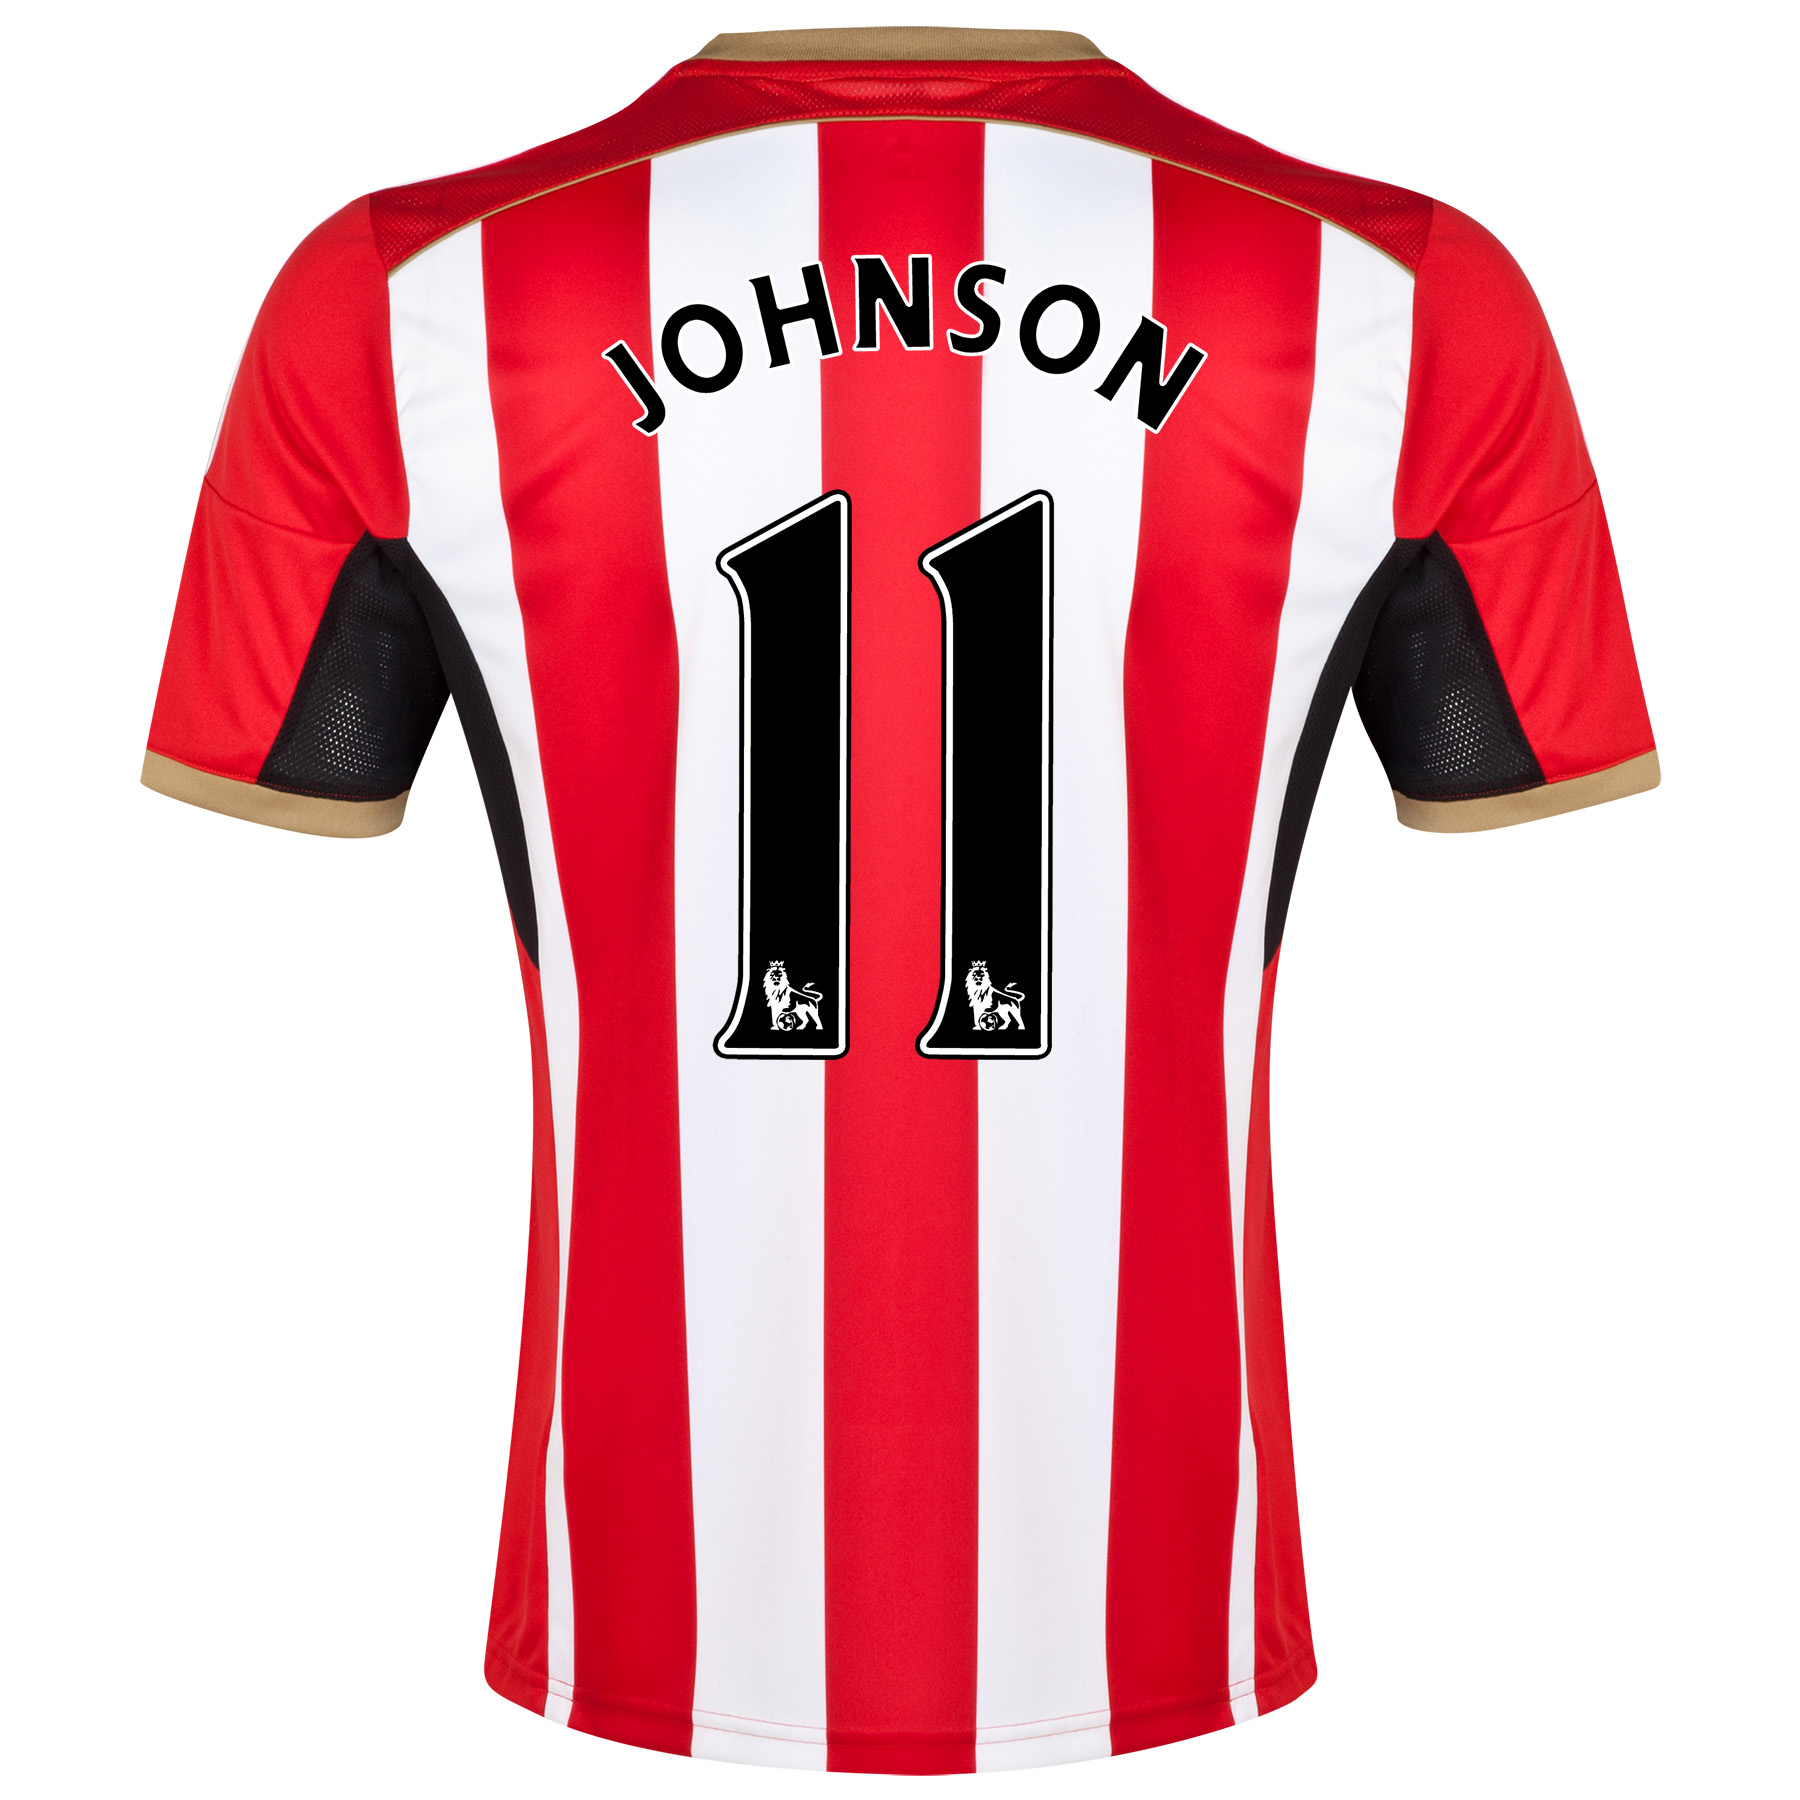 Sunderland Home Shirt 2014/15 Red with Johnson 11 printing